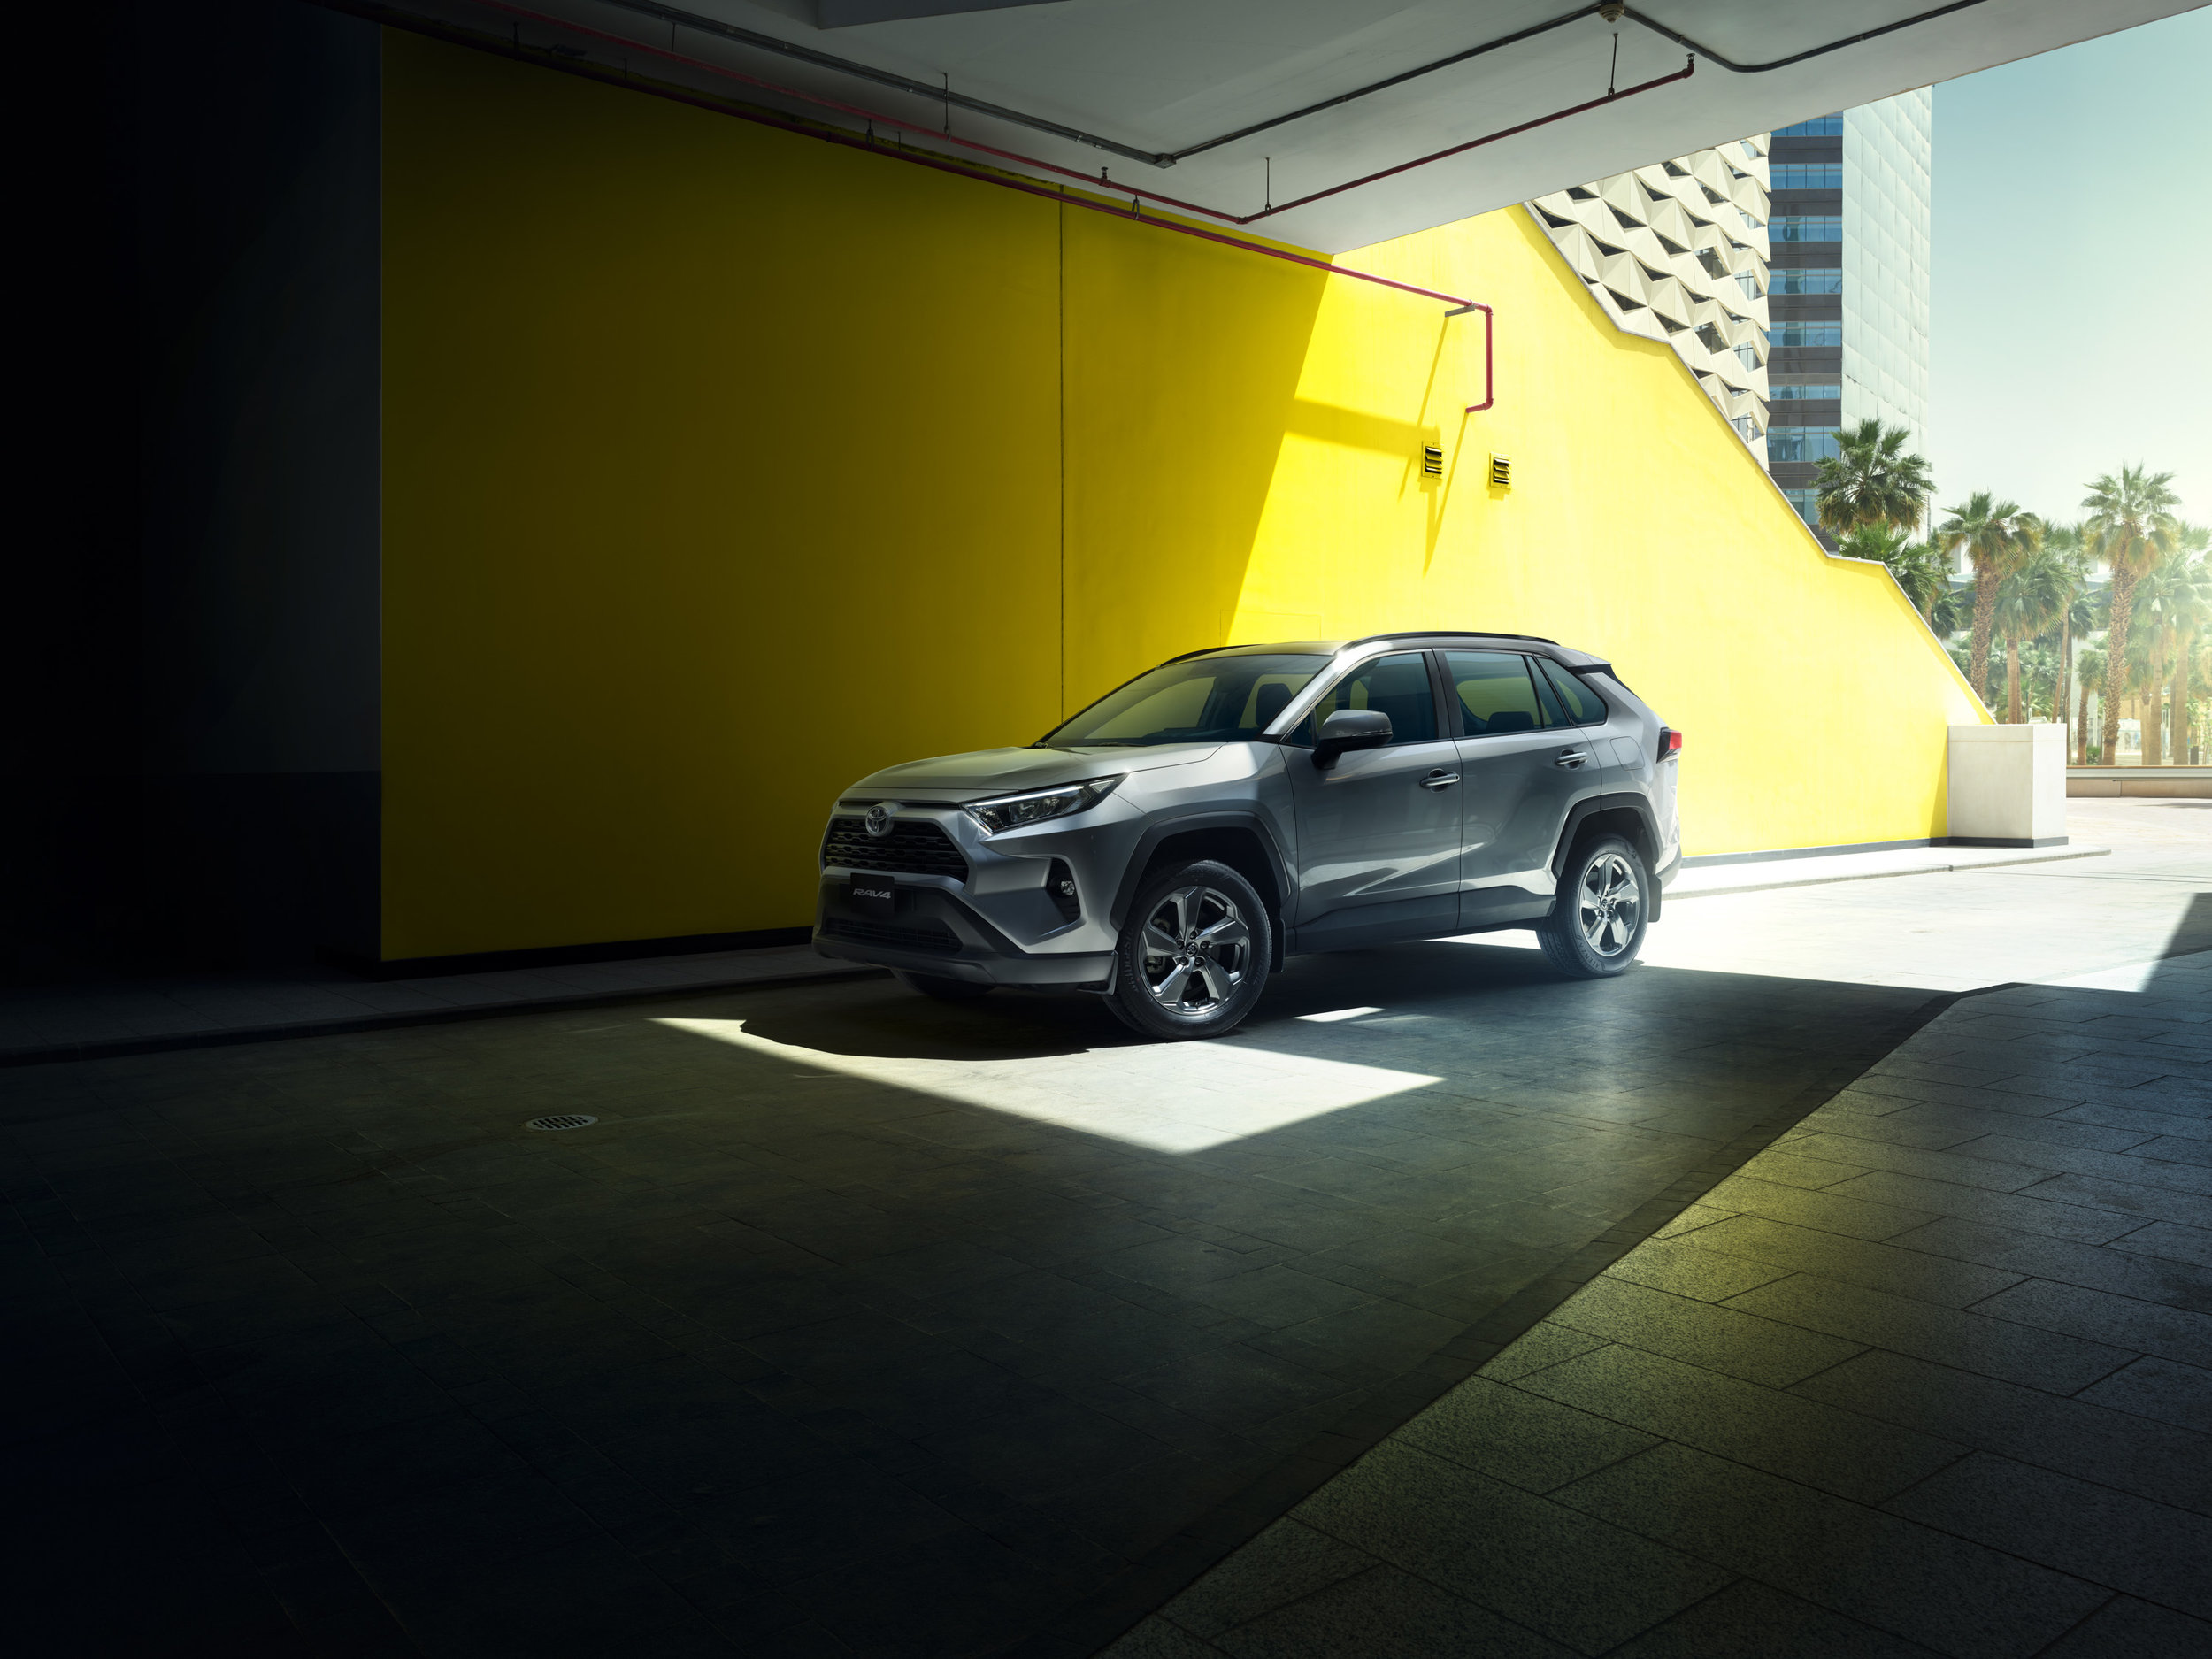 toyotoa_middleeast_campaign_05.jpg